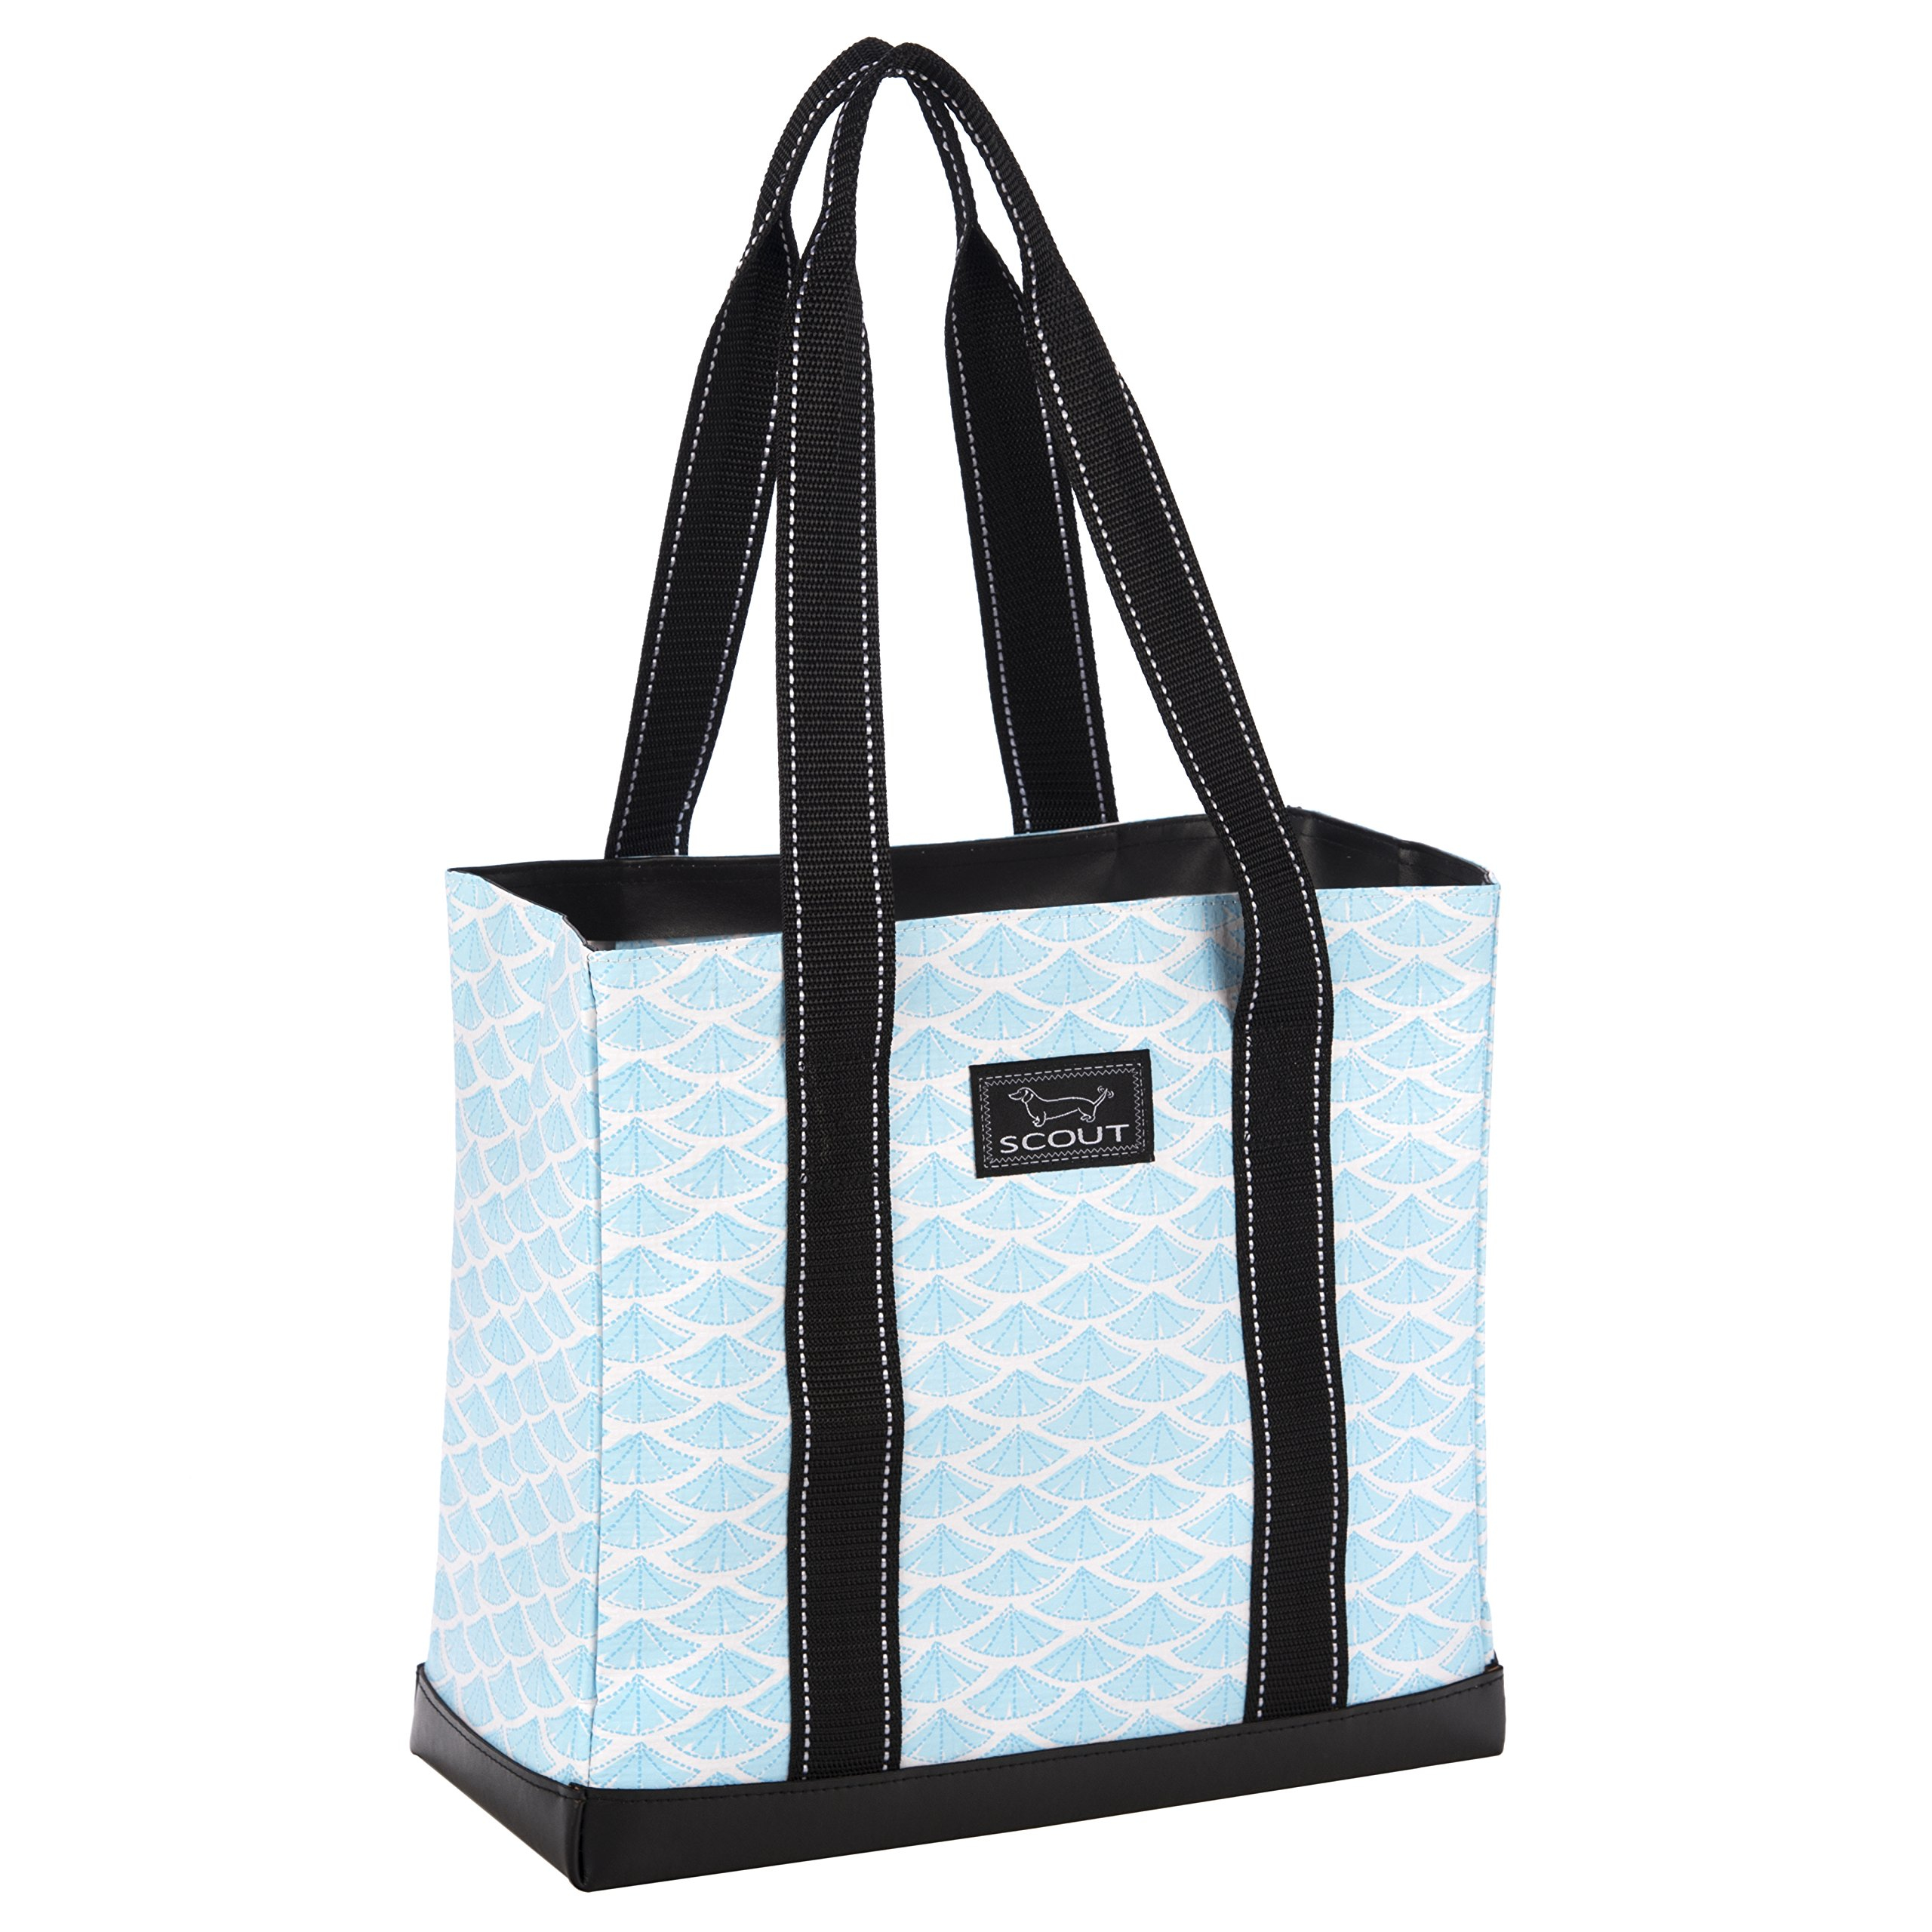 SCOUT Mini Deano Small Everyday Tote Bag, Folds Flat, Interior Zipper Pocket, Reinforced Bottom, Water Resistant, Swimfan